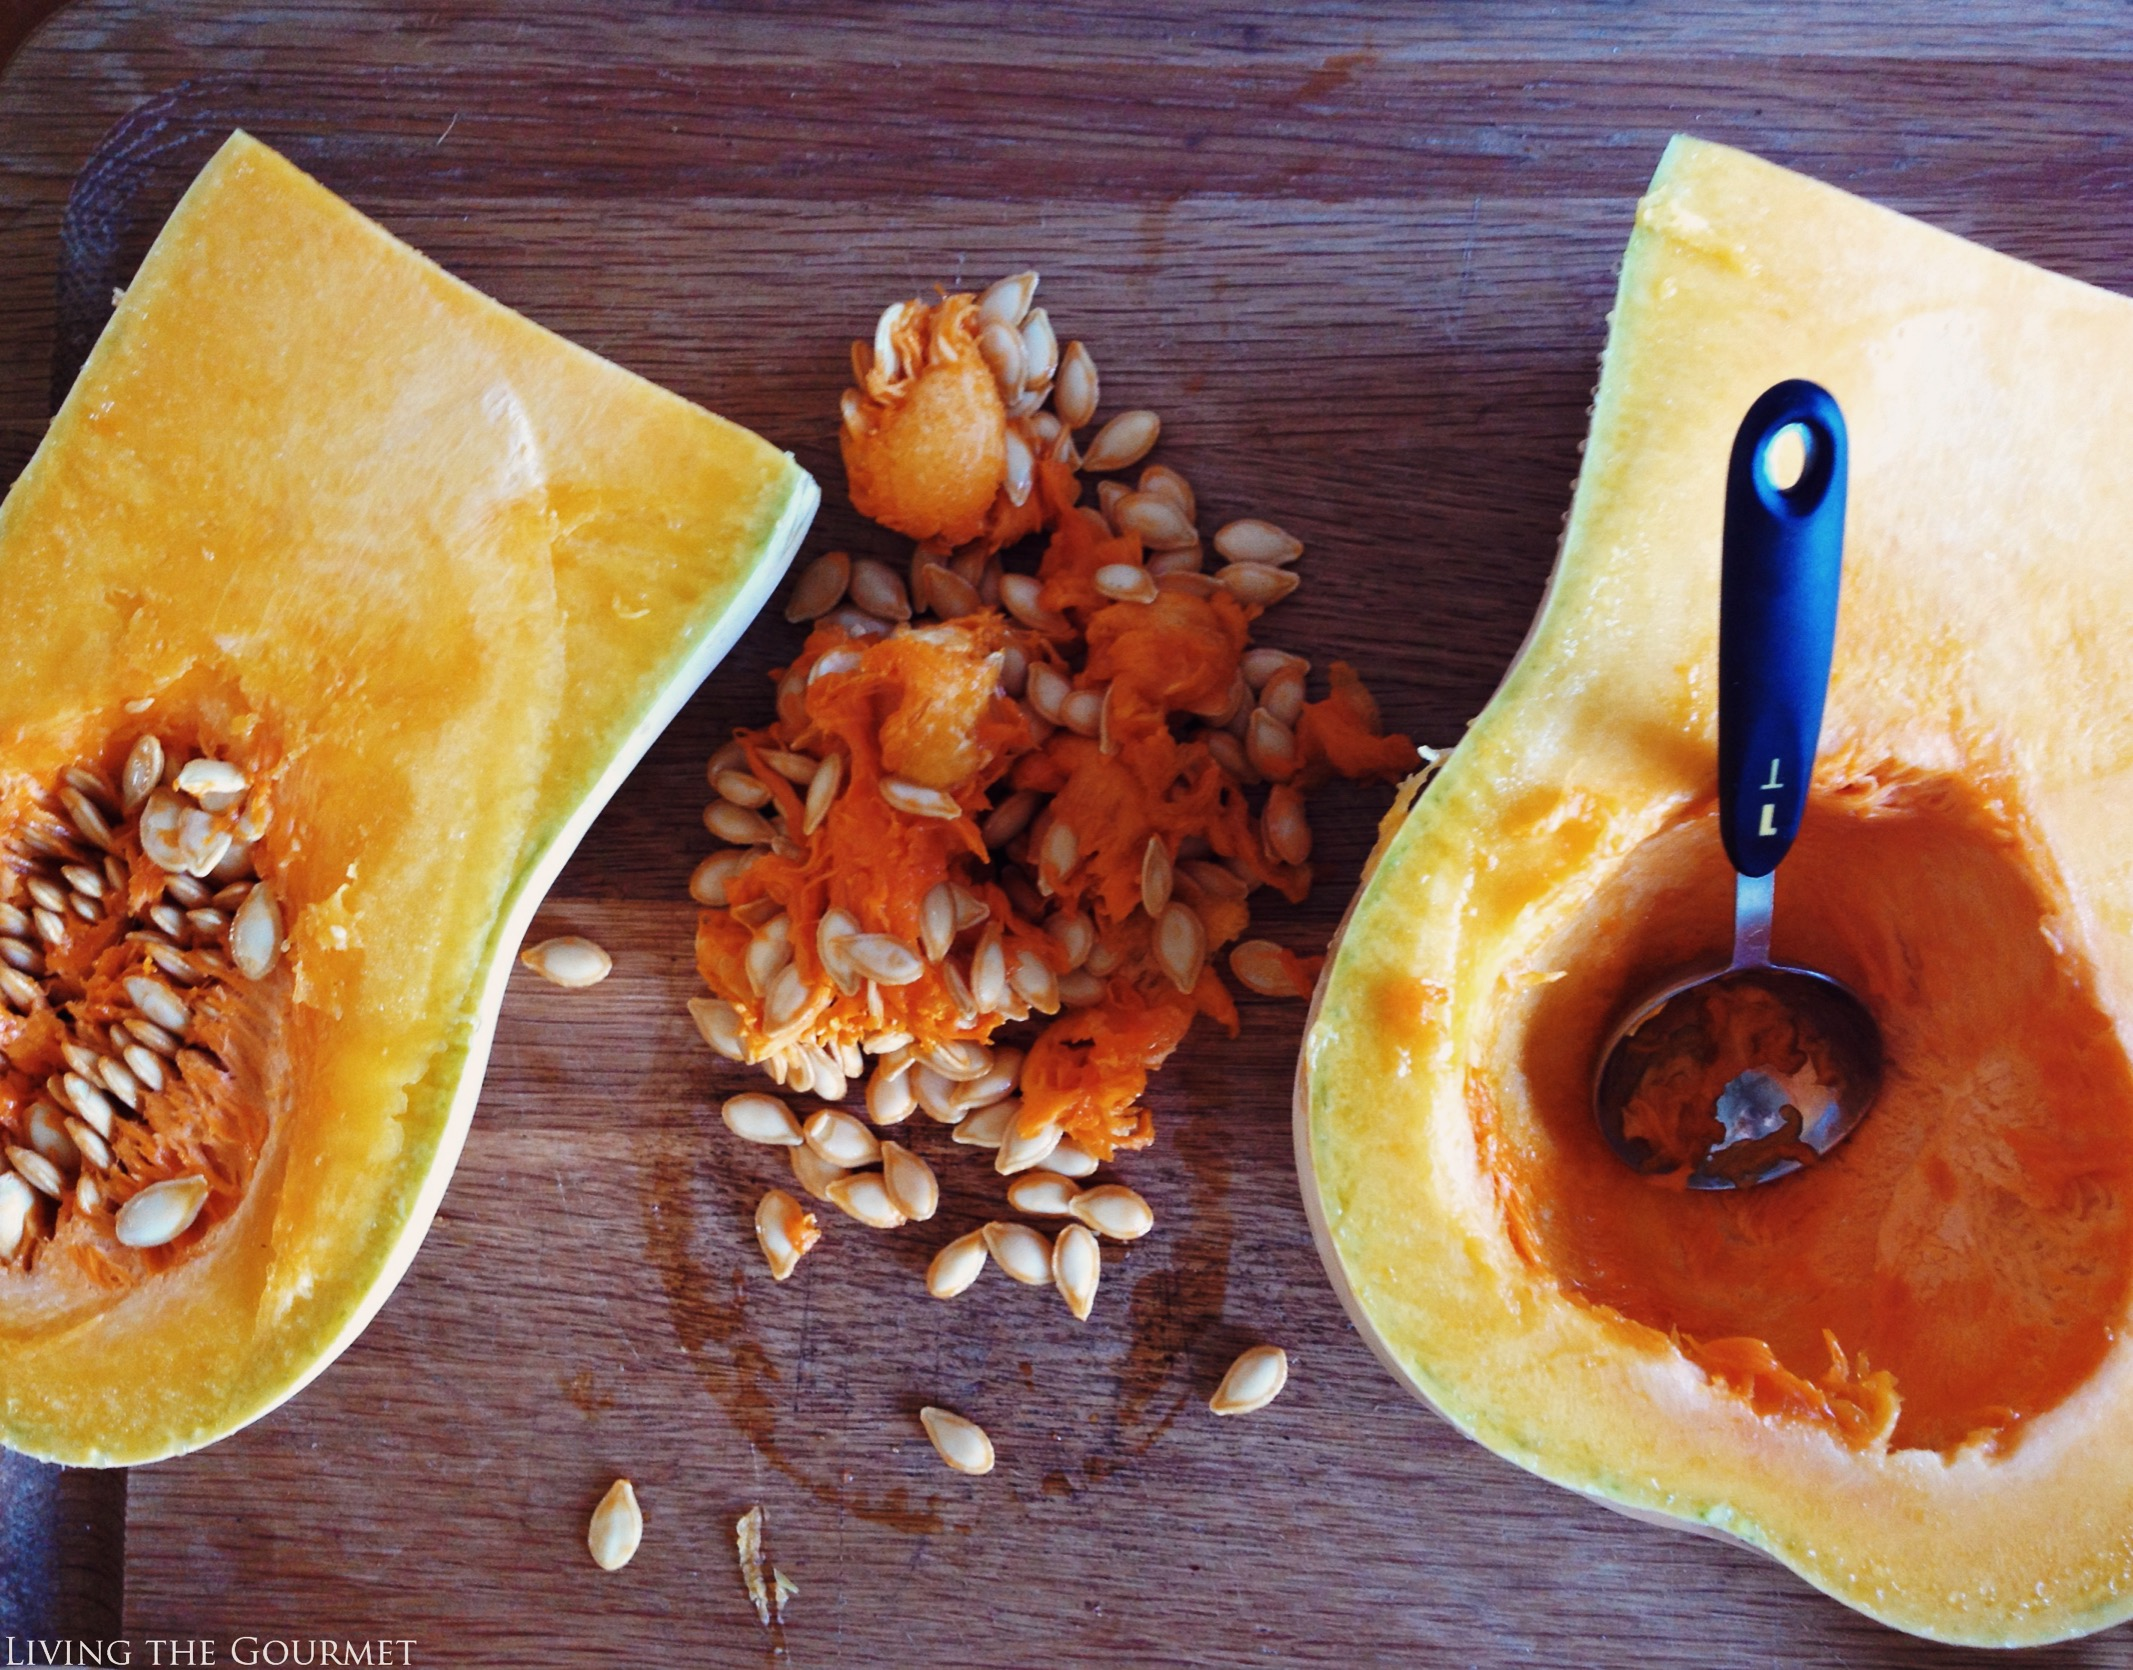 Living the Gourmet: Cinnamon Maple Gold Roasted Butternut Squash